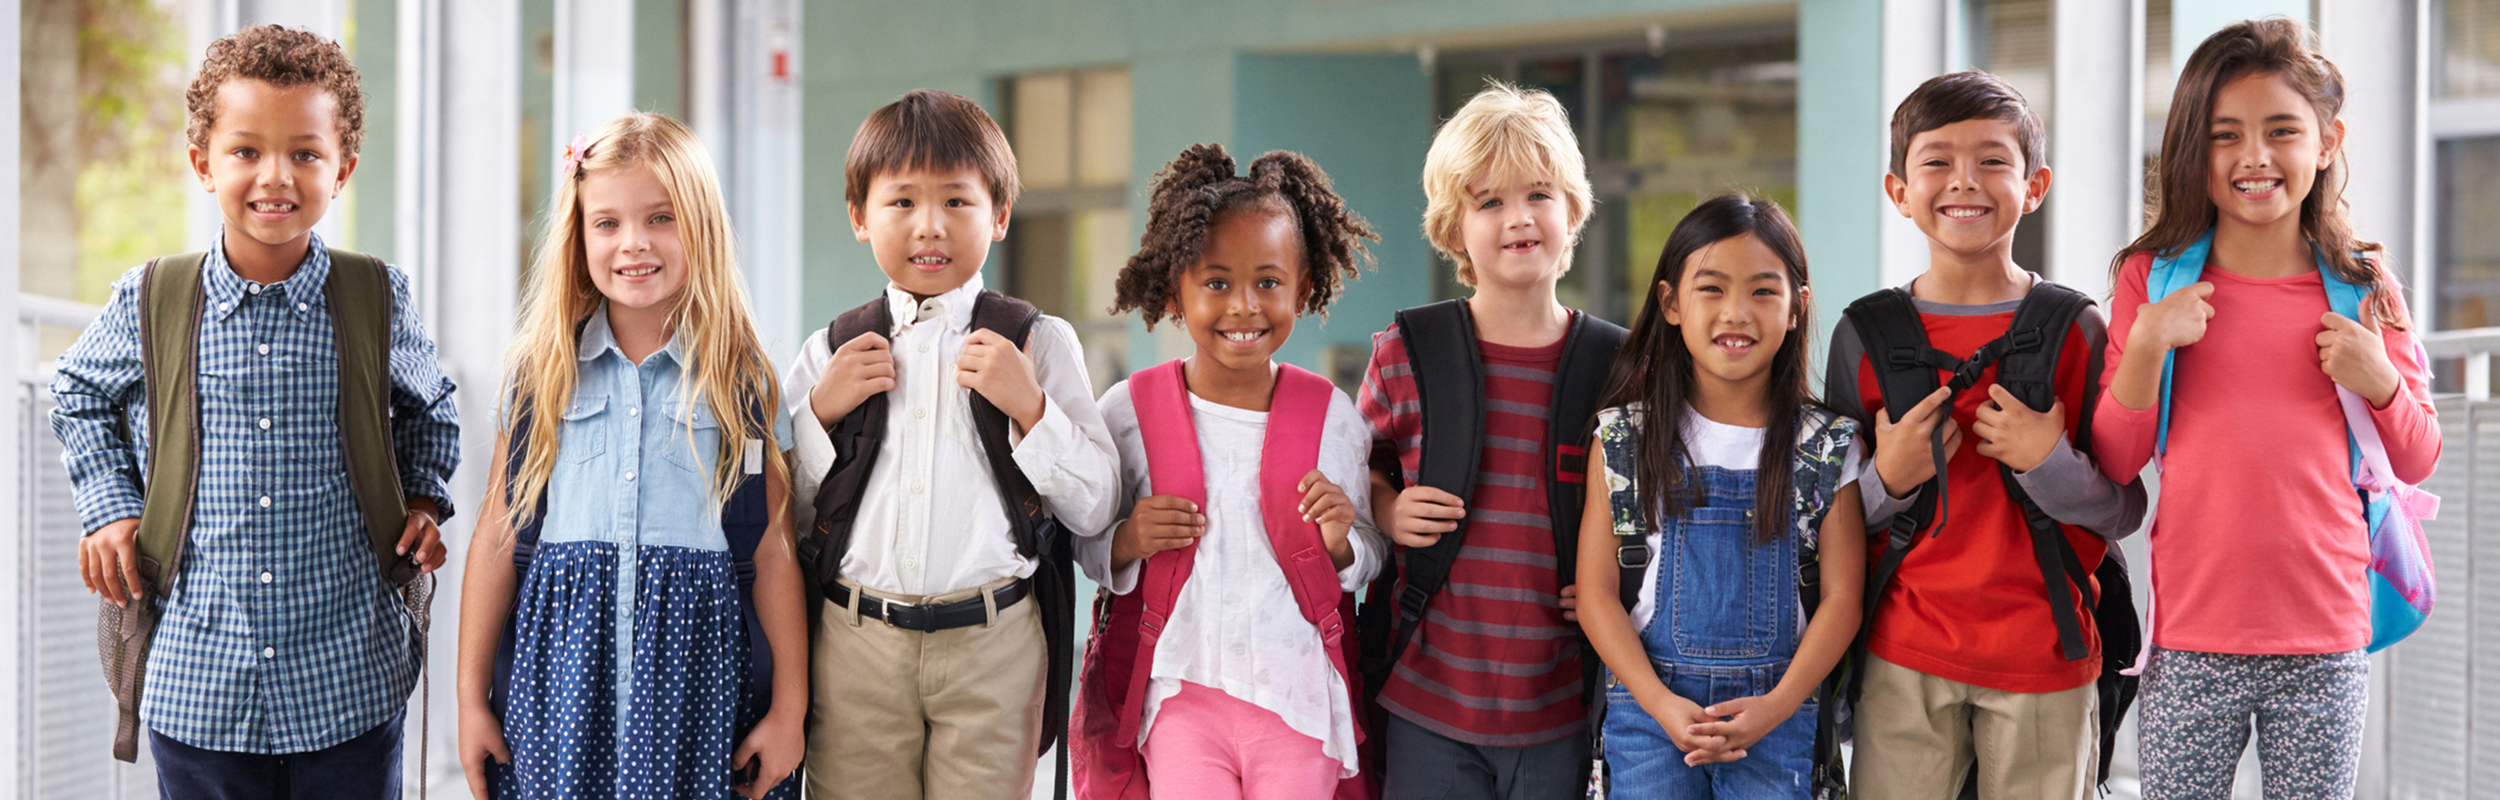 Students standing in a line with backpacks